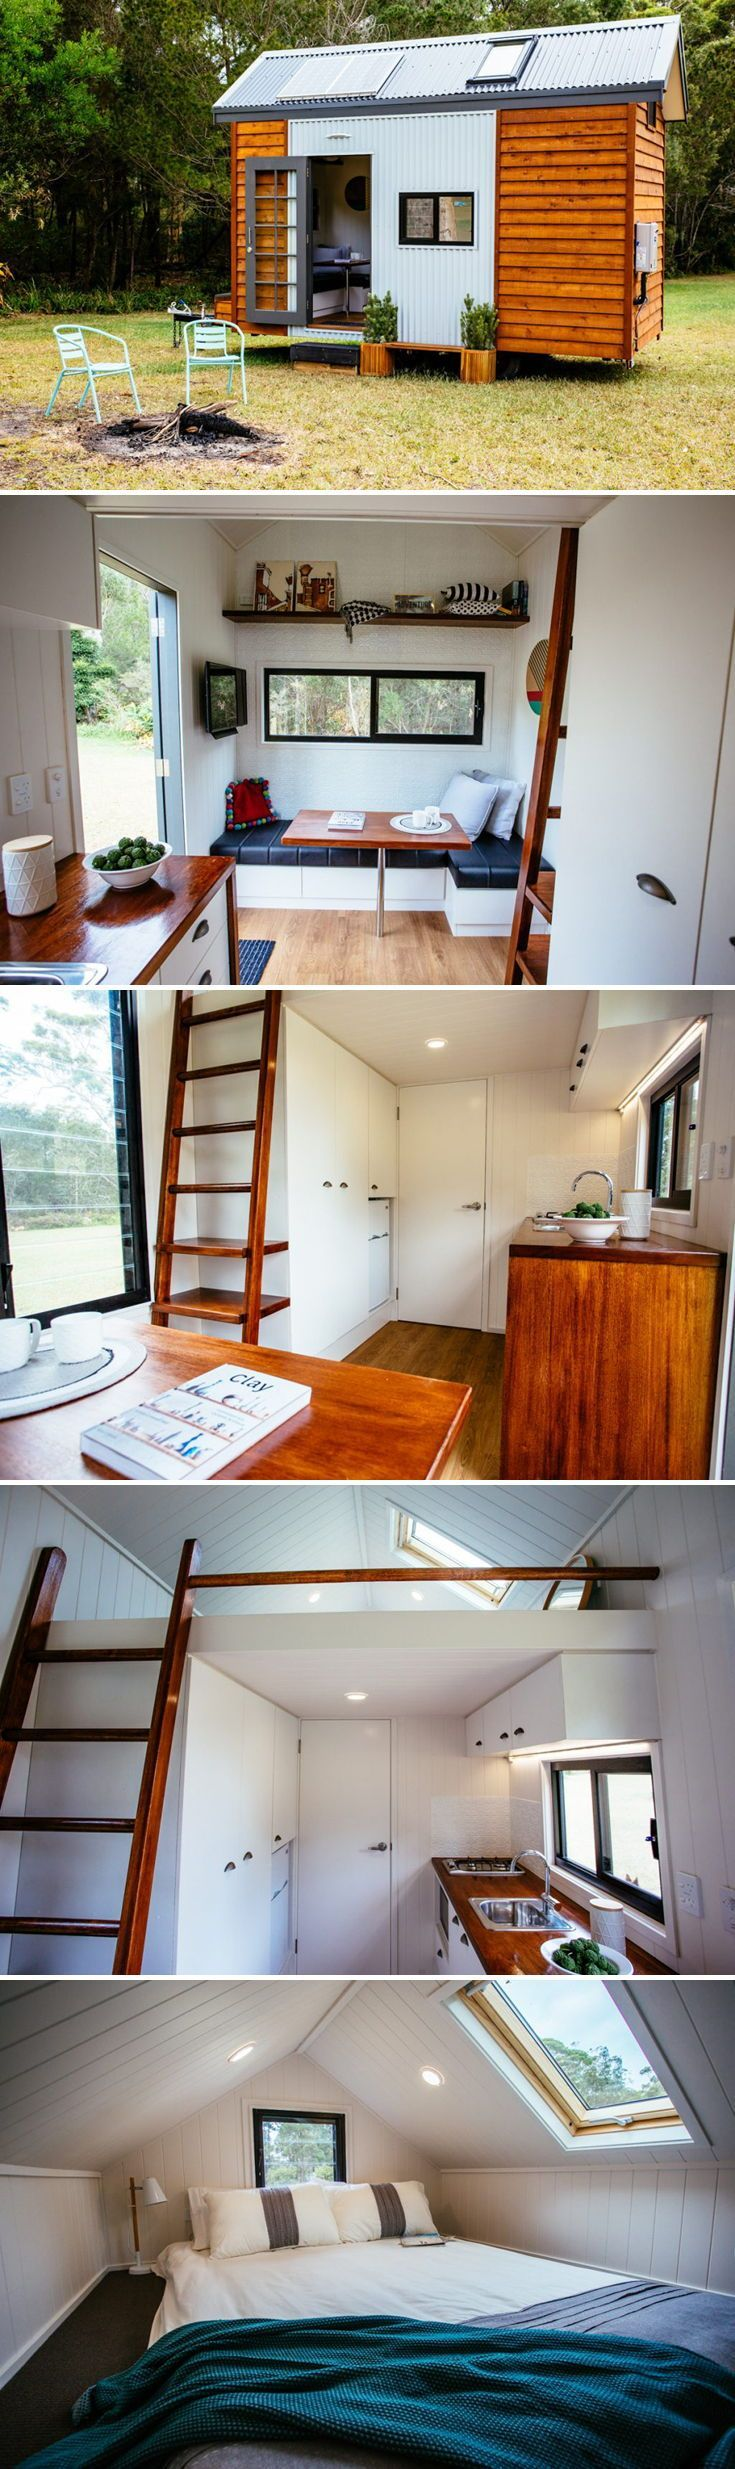 Independent Series 4800DL by Designer Eco Homes #tinyhousekitchens